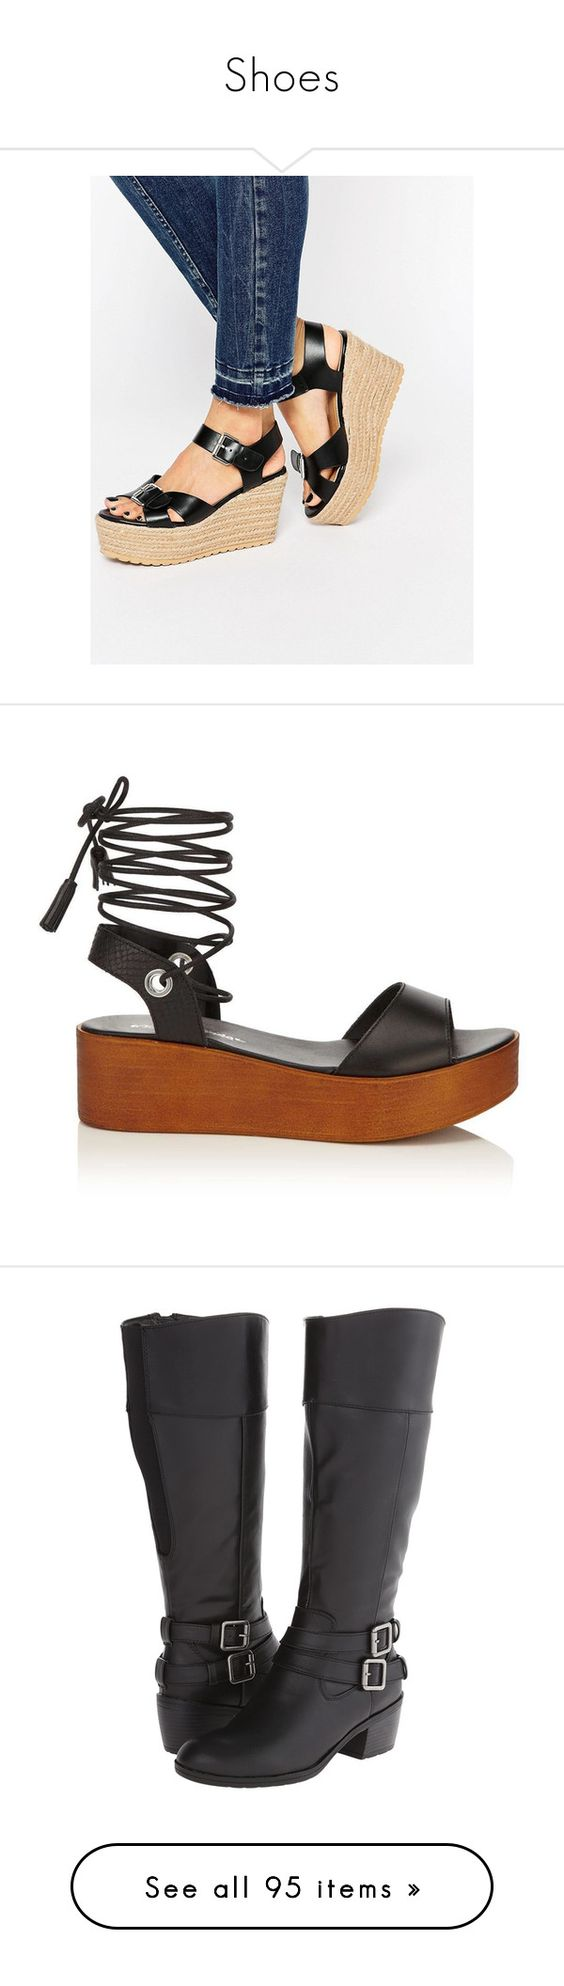 """""""Shoes"""" by auricru ❤ liked on Polyvore featuring shoes, sandals, black, asos shoes, braided wedge sandals, high wedge sandals, high heel wedge sandals, black sandals, wedge heel sandals and black flatform shoes"""